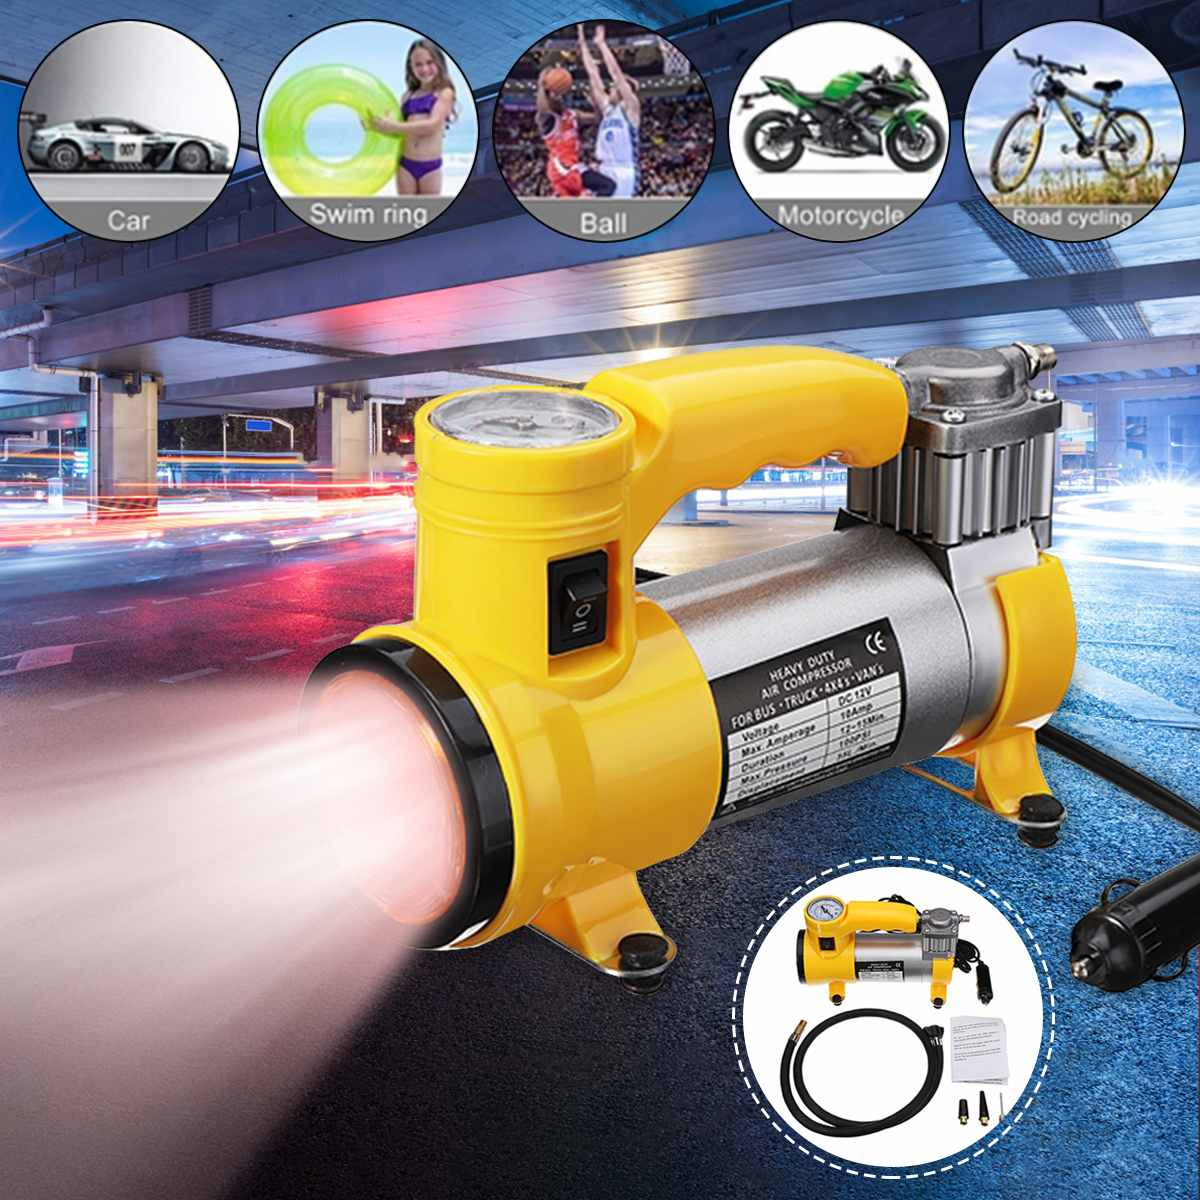 12V Electric Inflator Pump Car Tire Inflator Air Pump With Air Compressor for Car Bicycles Motorcycles Bus Air Pumps